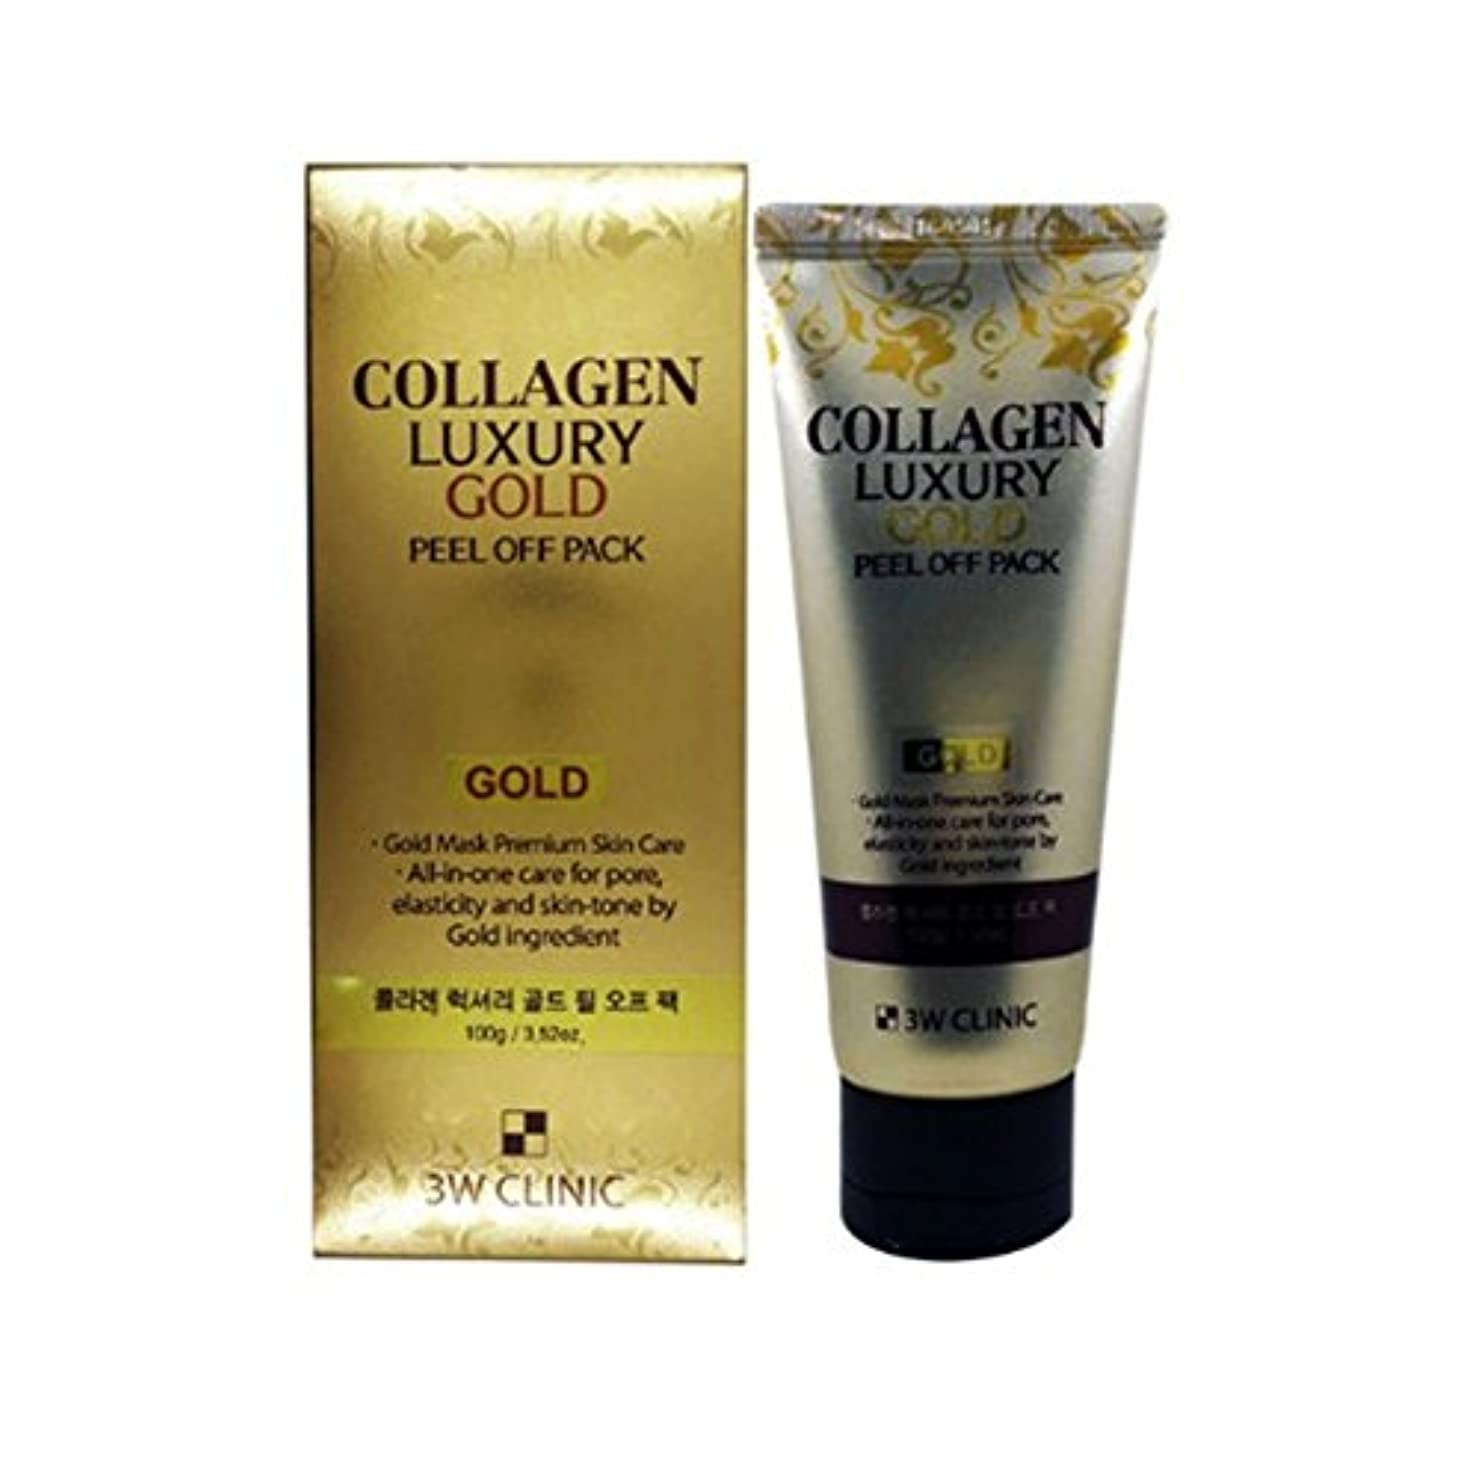 磁石にはまって血【韓国 3W CLINIC】COLLAGEN LUXURY GOLD PEEL OFF PACK 100g